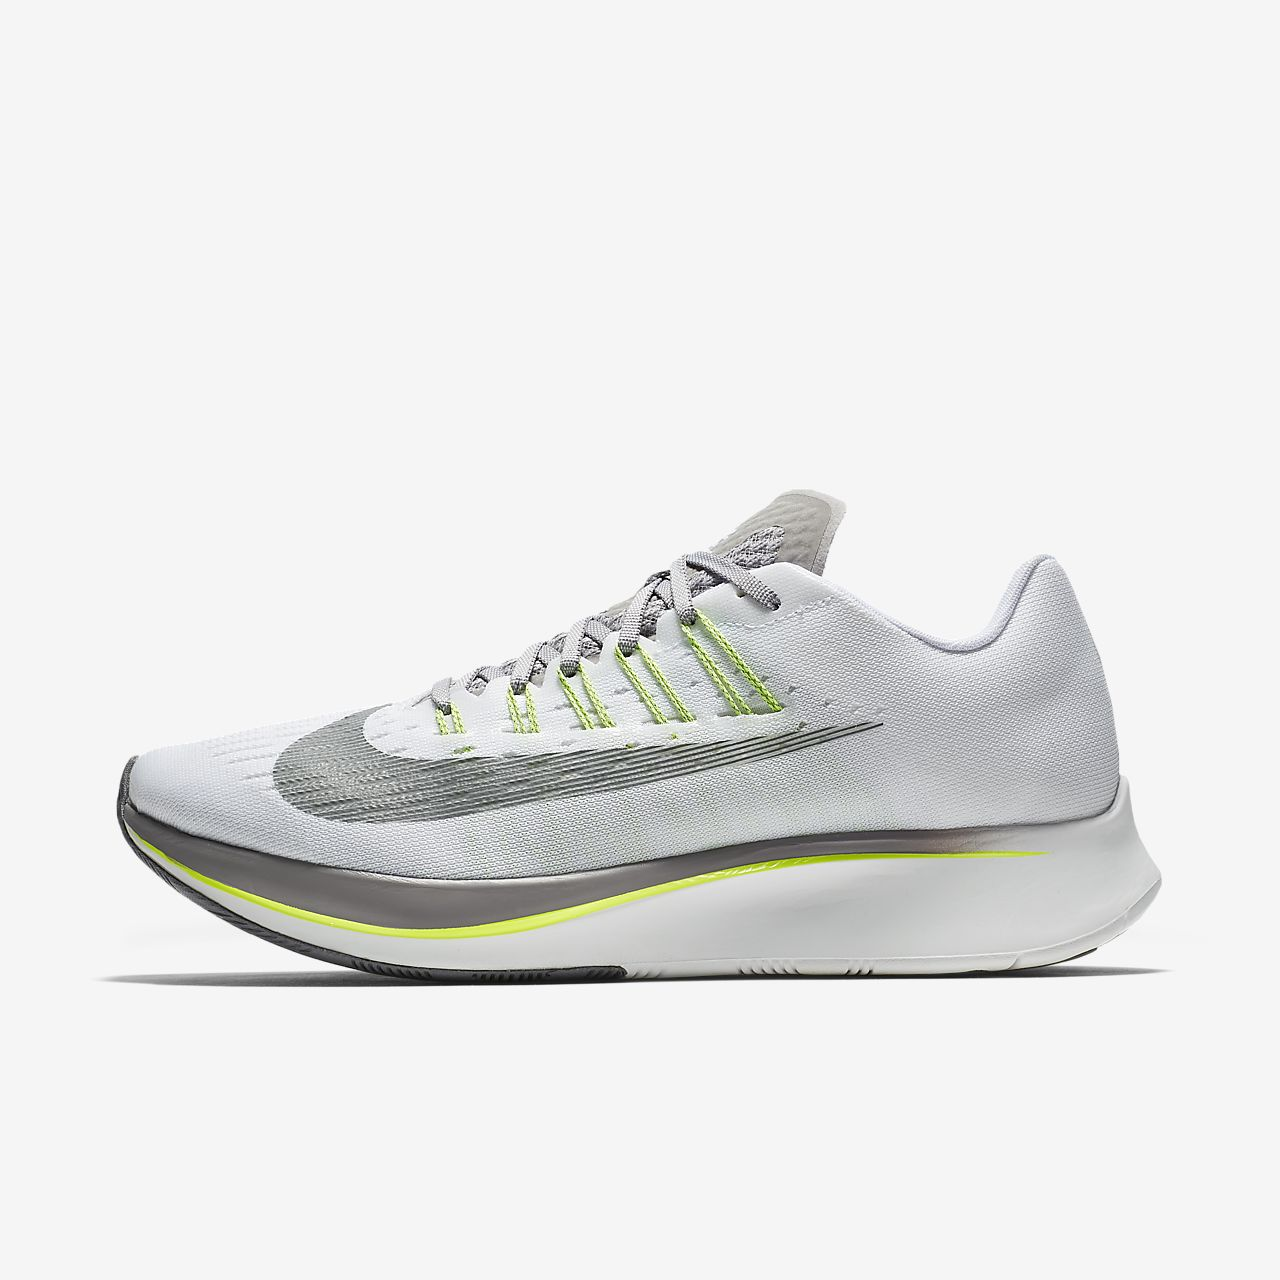 8cdbe73f59a8 Nike Zoom Fly Men s Running Shoe. Nike.com